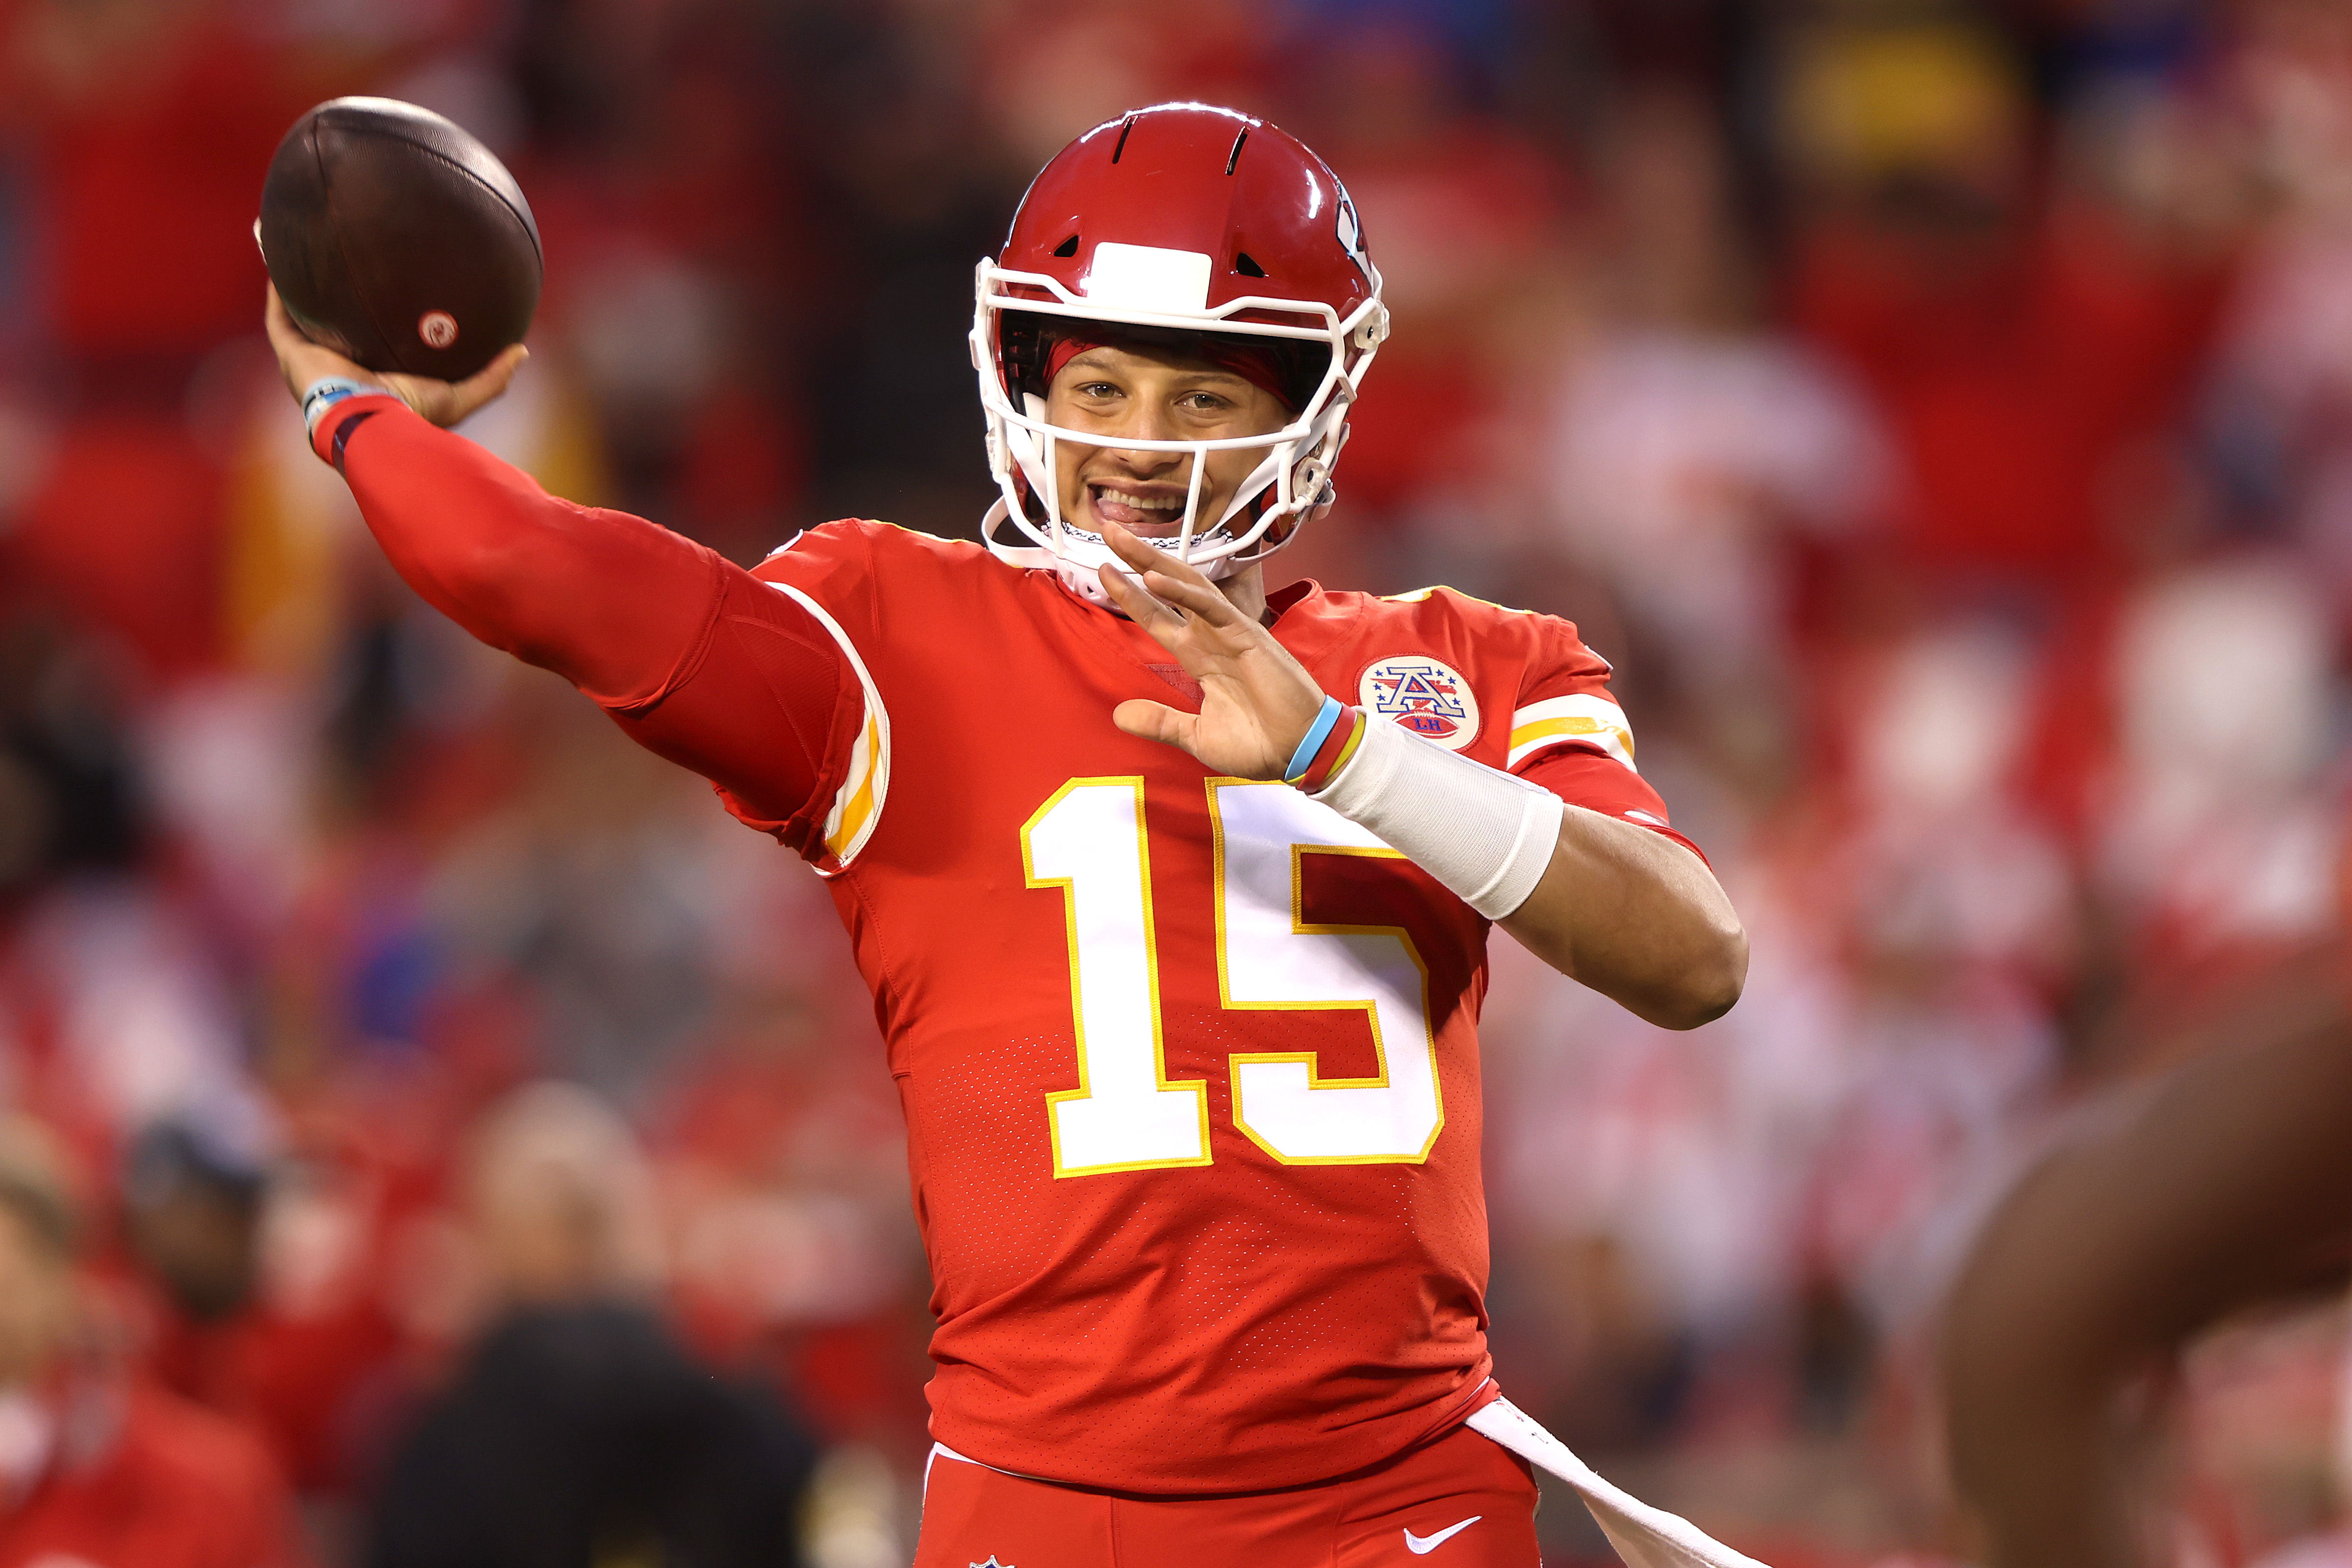 Patrick Mahomes #15 of the Kansas City Chiefs warms up prior to a game against the Buffalo Bills at Arrowhead Stadium on October 10, 2021 in Kansas City, Missouri.